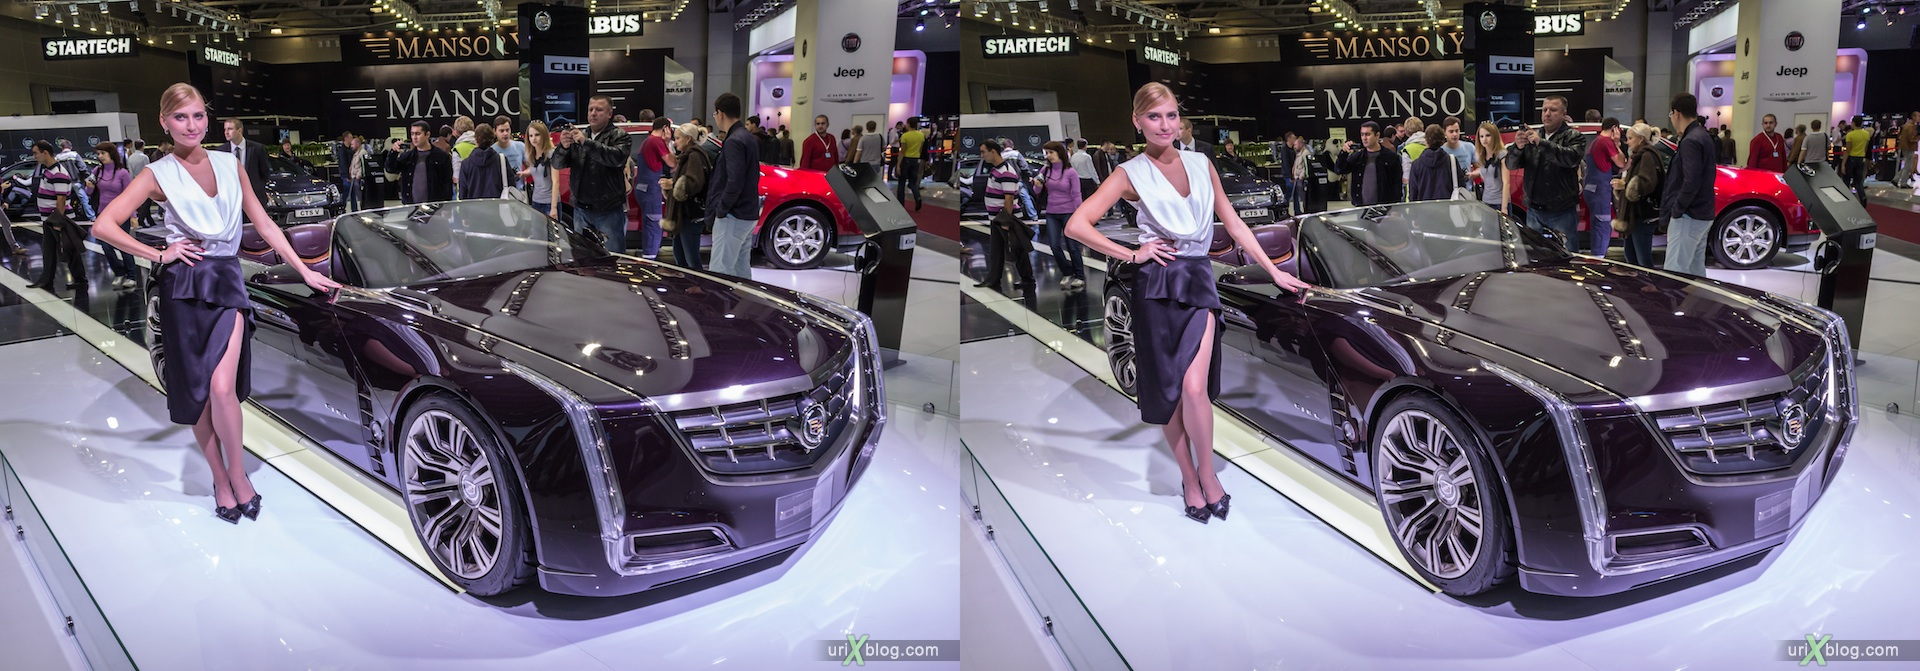 2012, Cadillac CIEL, девушка, модель, girl, model, Moscow International Automobile Salon, auto show, 3D, stereo pair, cross-eyed, crossview